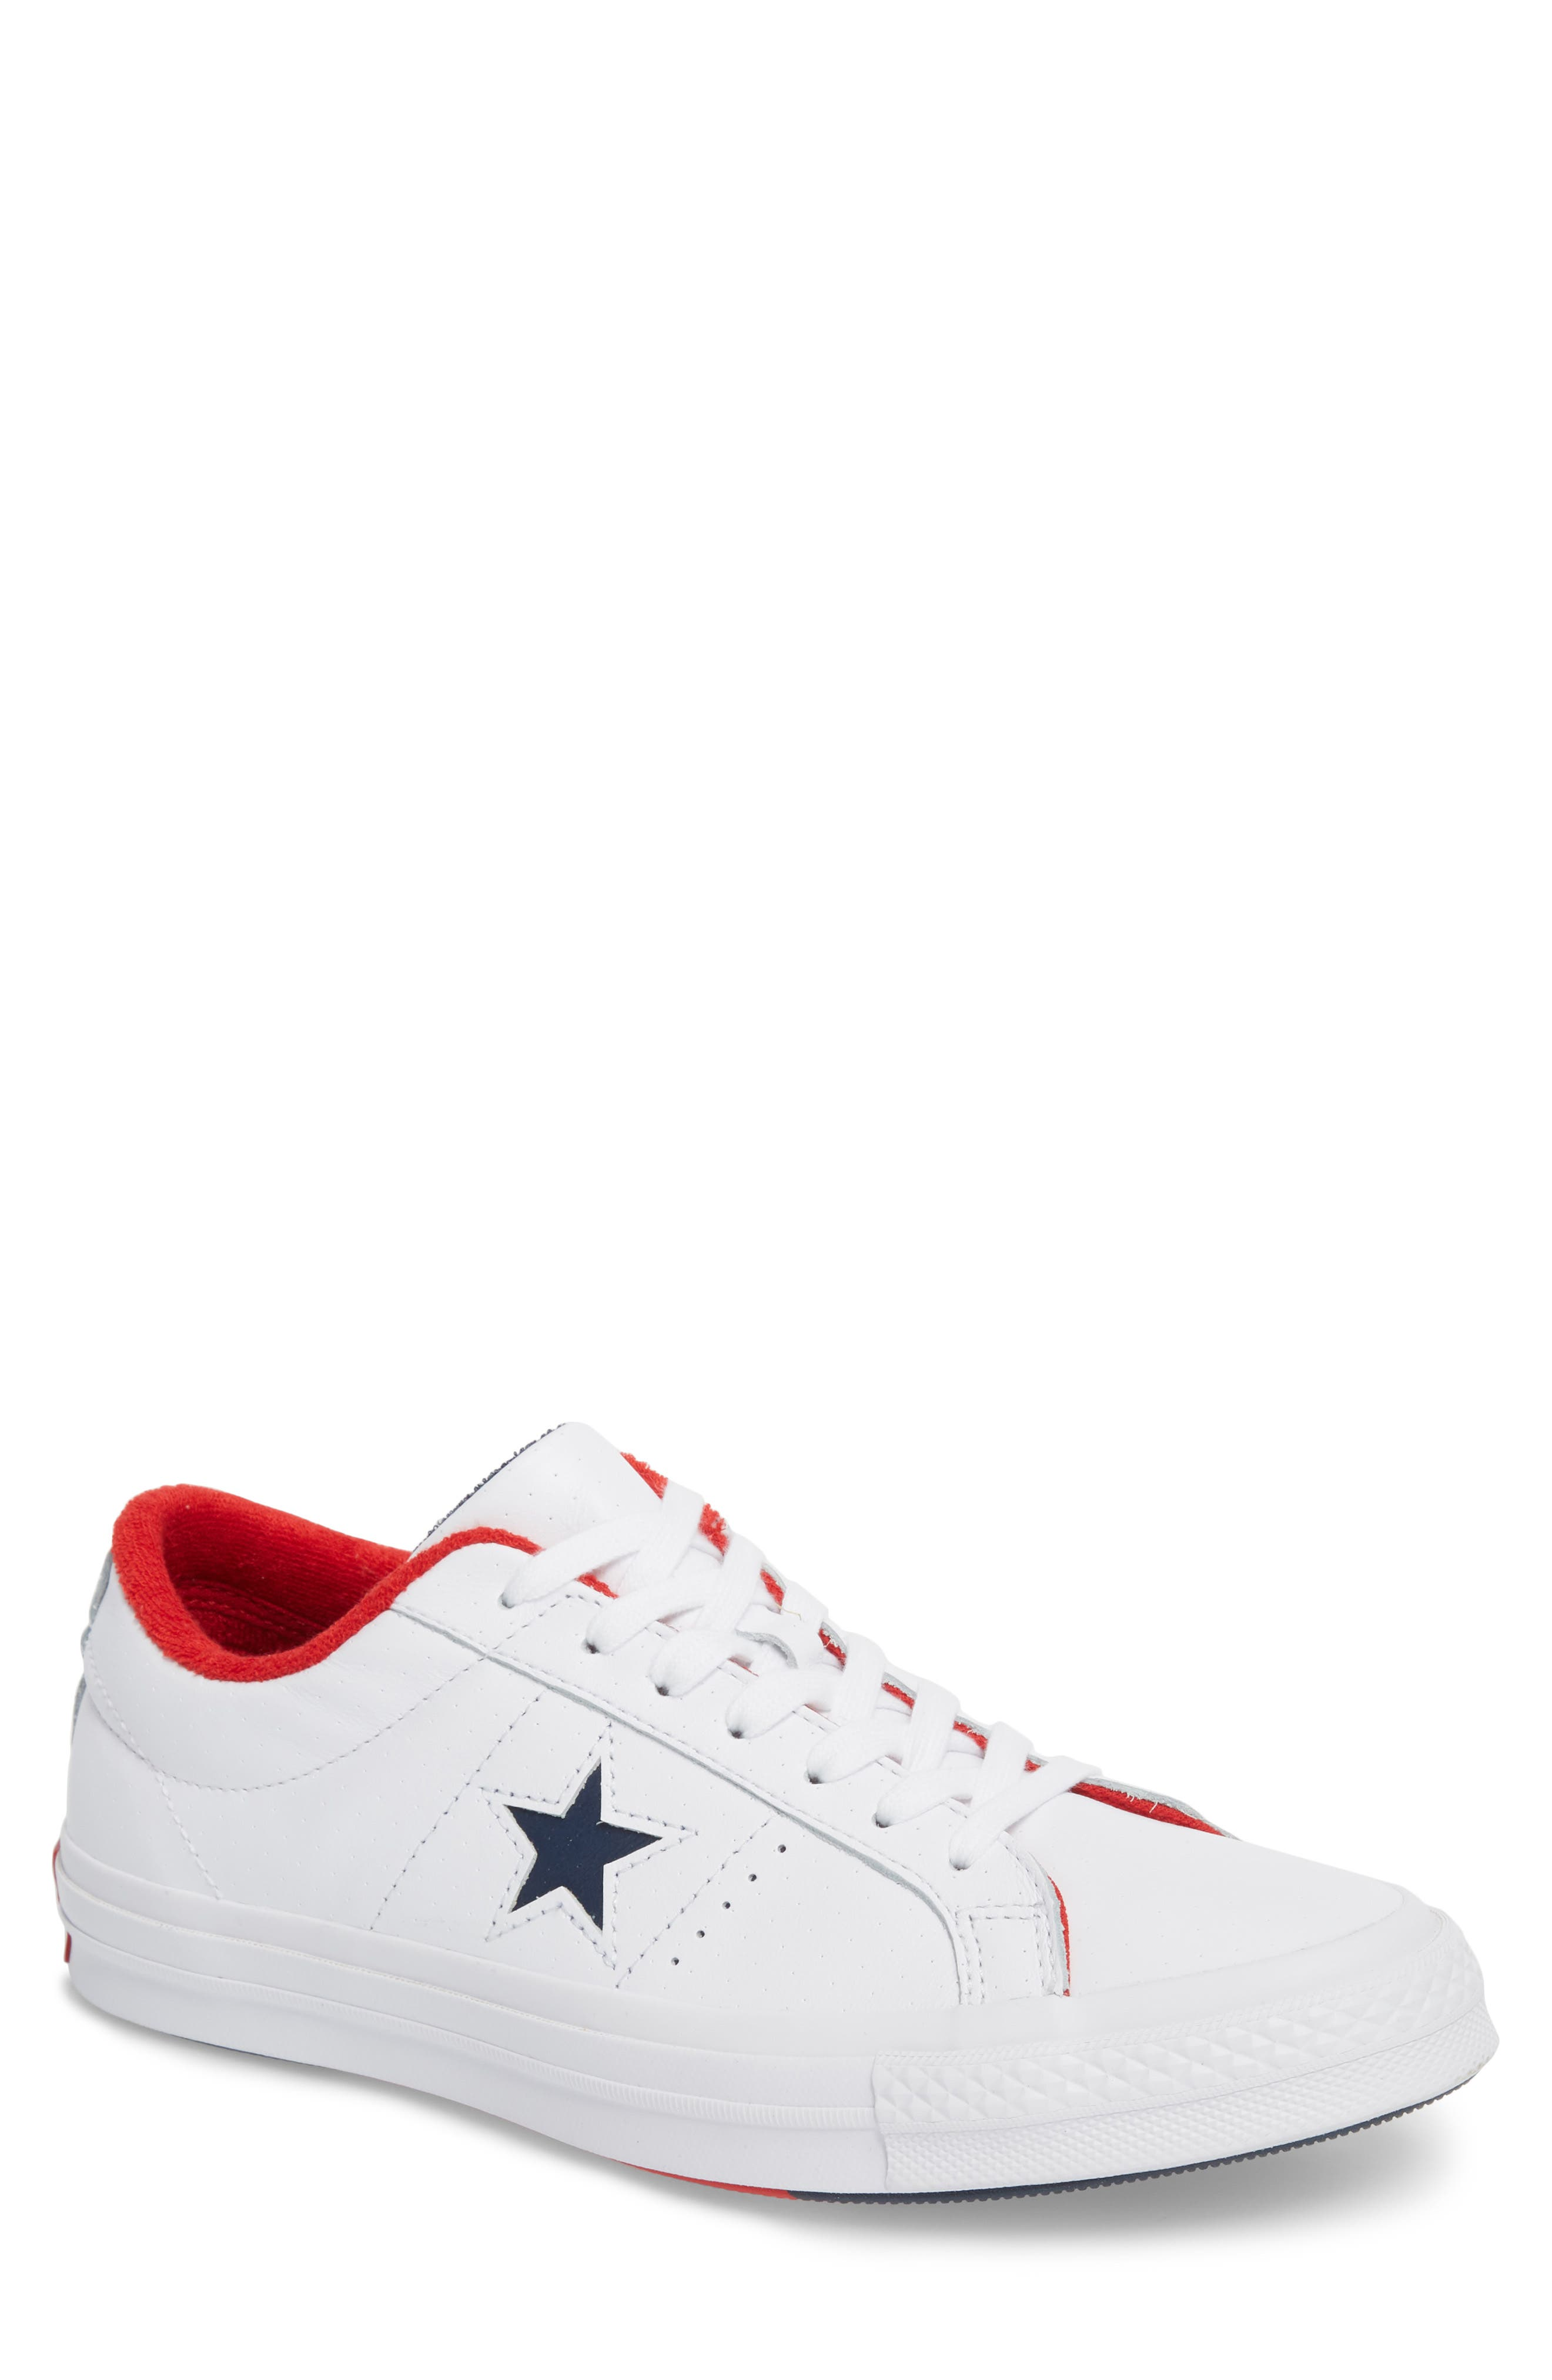 Chuck Taylor<sup>®</sup> One Star Grand Slam Sneaker,                             Main thumbnail 1, color,                             White/ Navy Leather